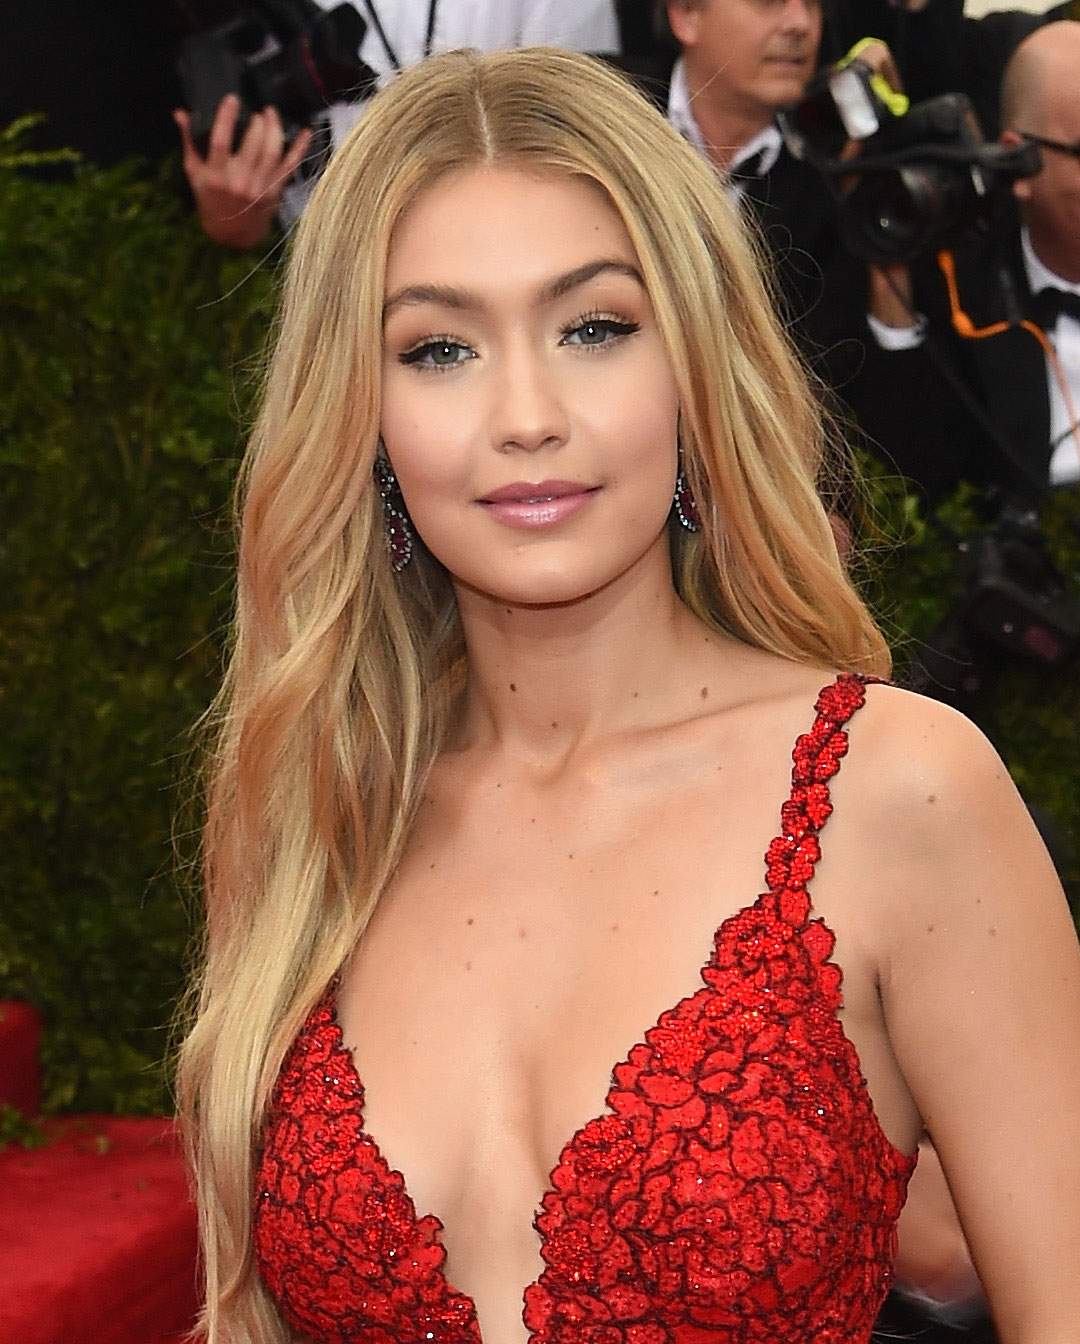 Gigi Hadid attends the 'China: Through The Looking Glass' Costume Institute Benefit Gala at the Metropolitan Museum of Art.